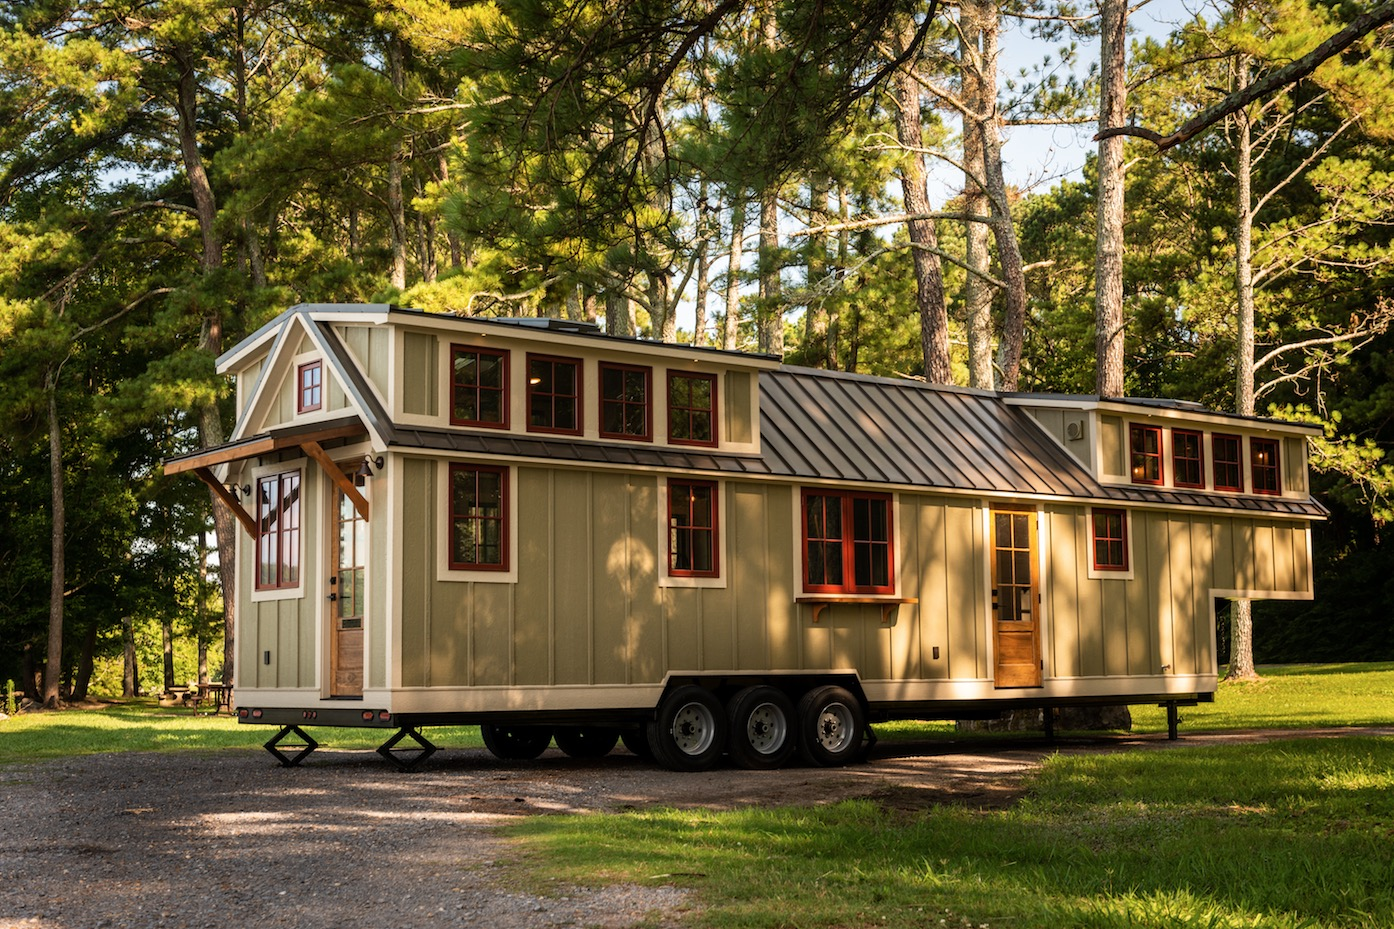 Tiny House Floor Plans Small Cabins Tiny Houses Small: Super Spacious 42-Foot Tiny Home On Wheels... The Denali